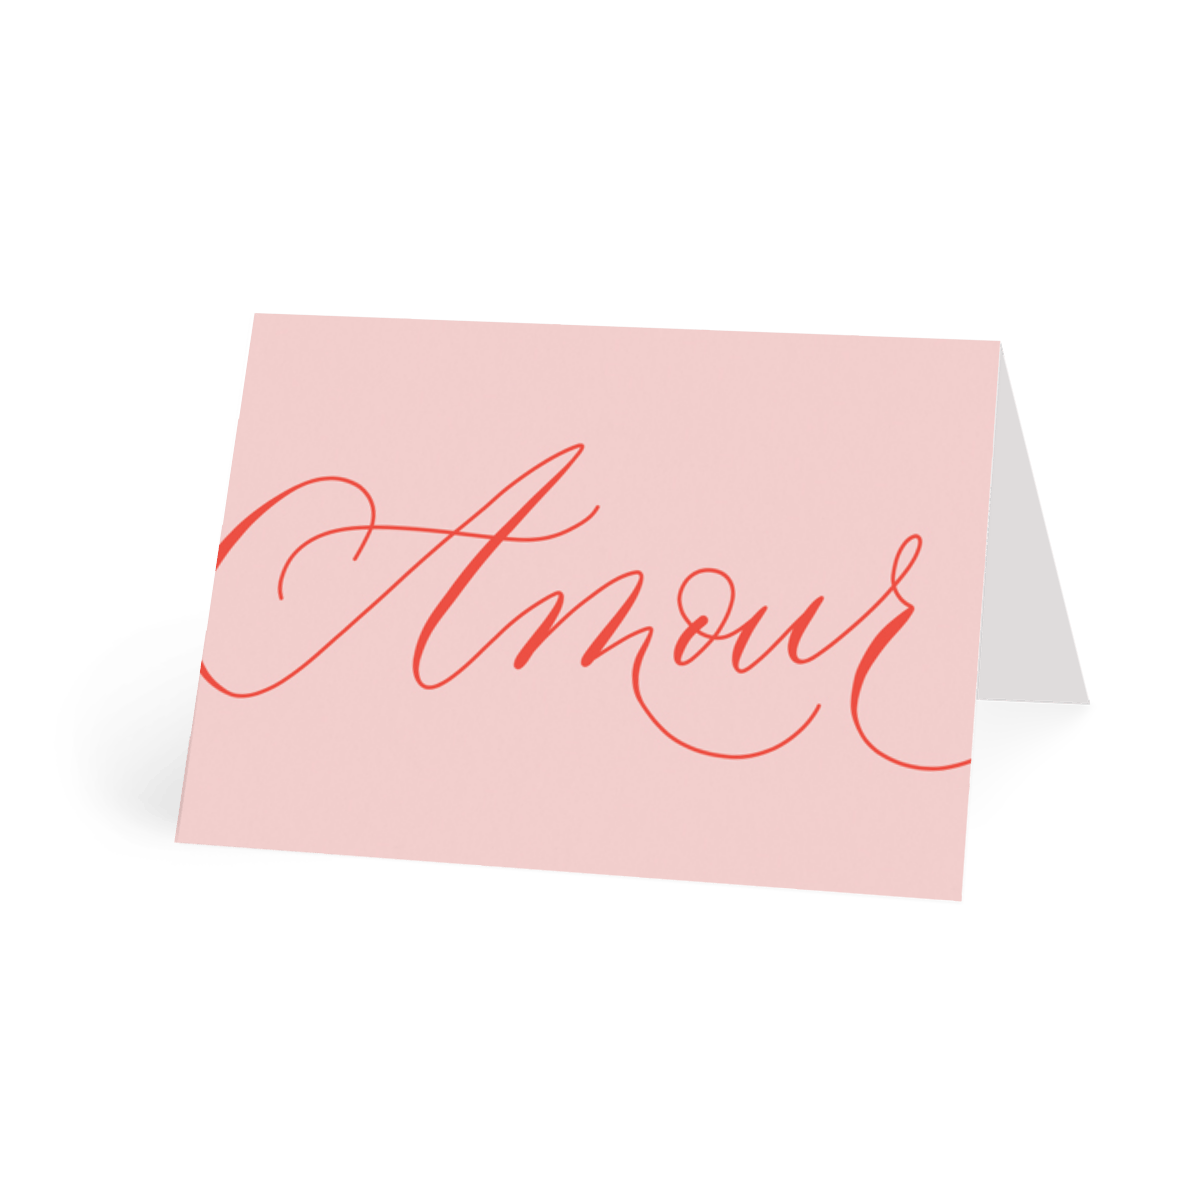 Https%3a%2f%2fwww.papier.com%2fproduct image%2f66888%2f14%2fcalligraphy amour 15865 front 1550656004.png?ixlib=rb 1.1